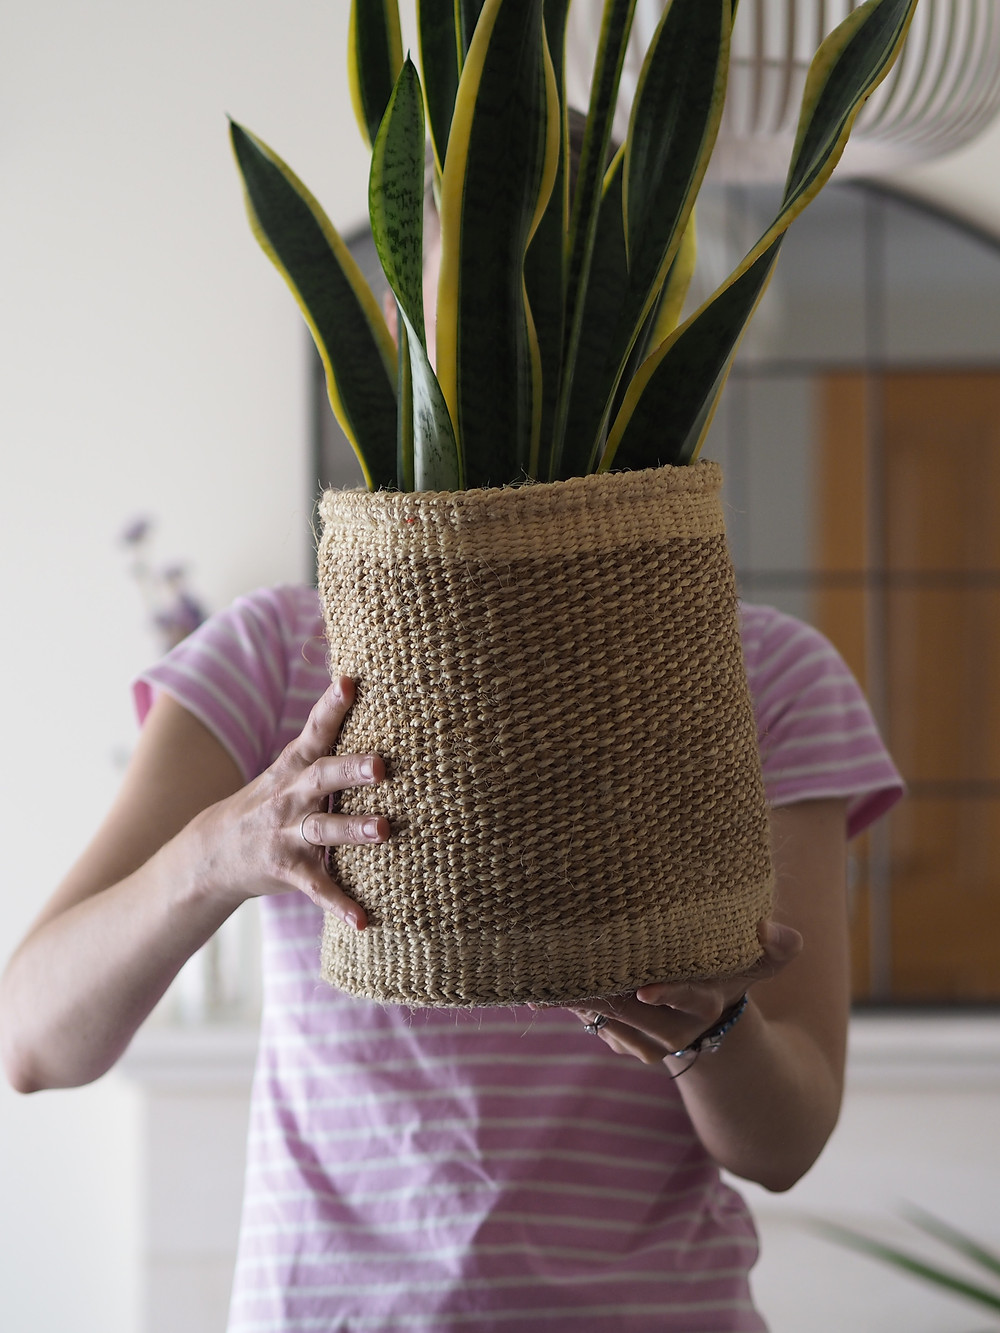 Hand woven basket planter in hands